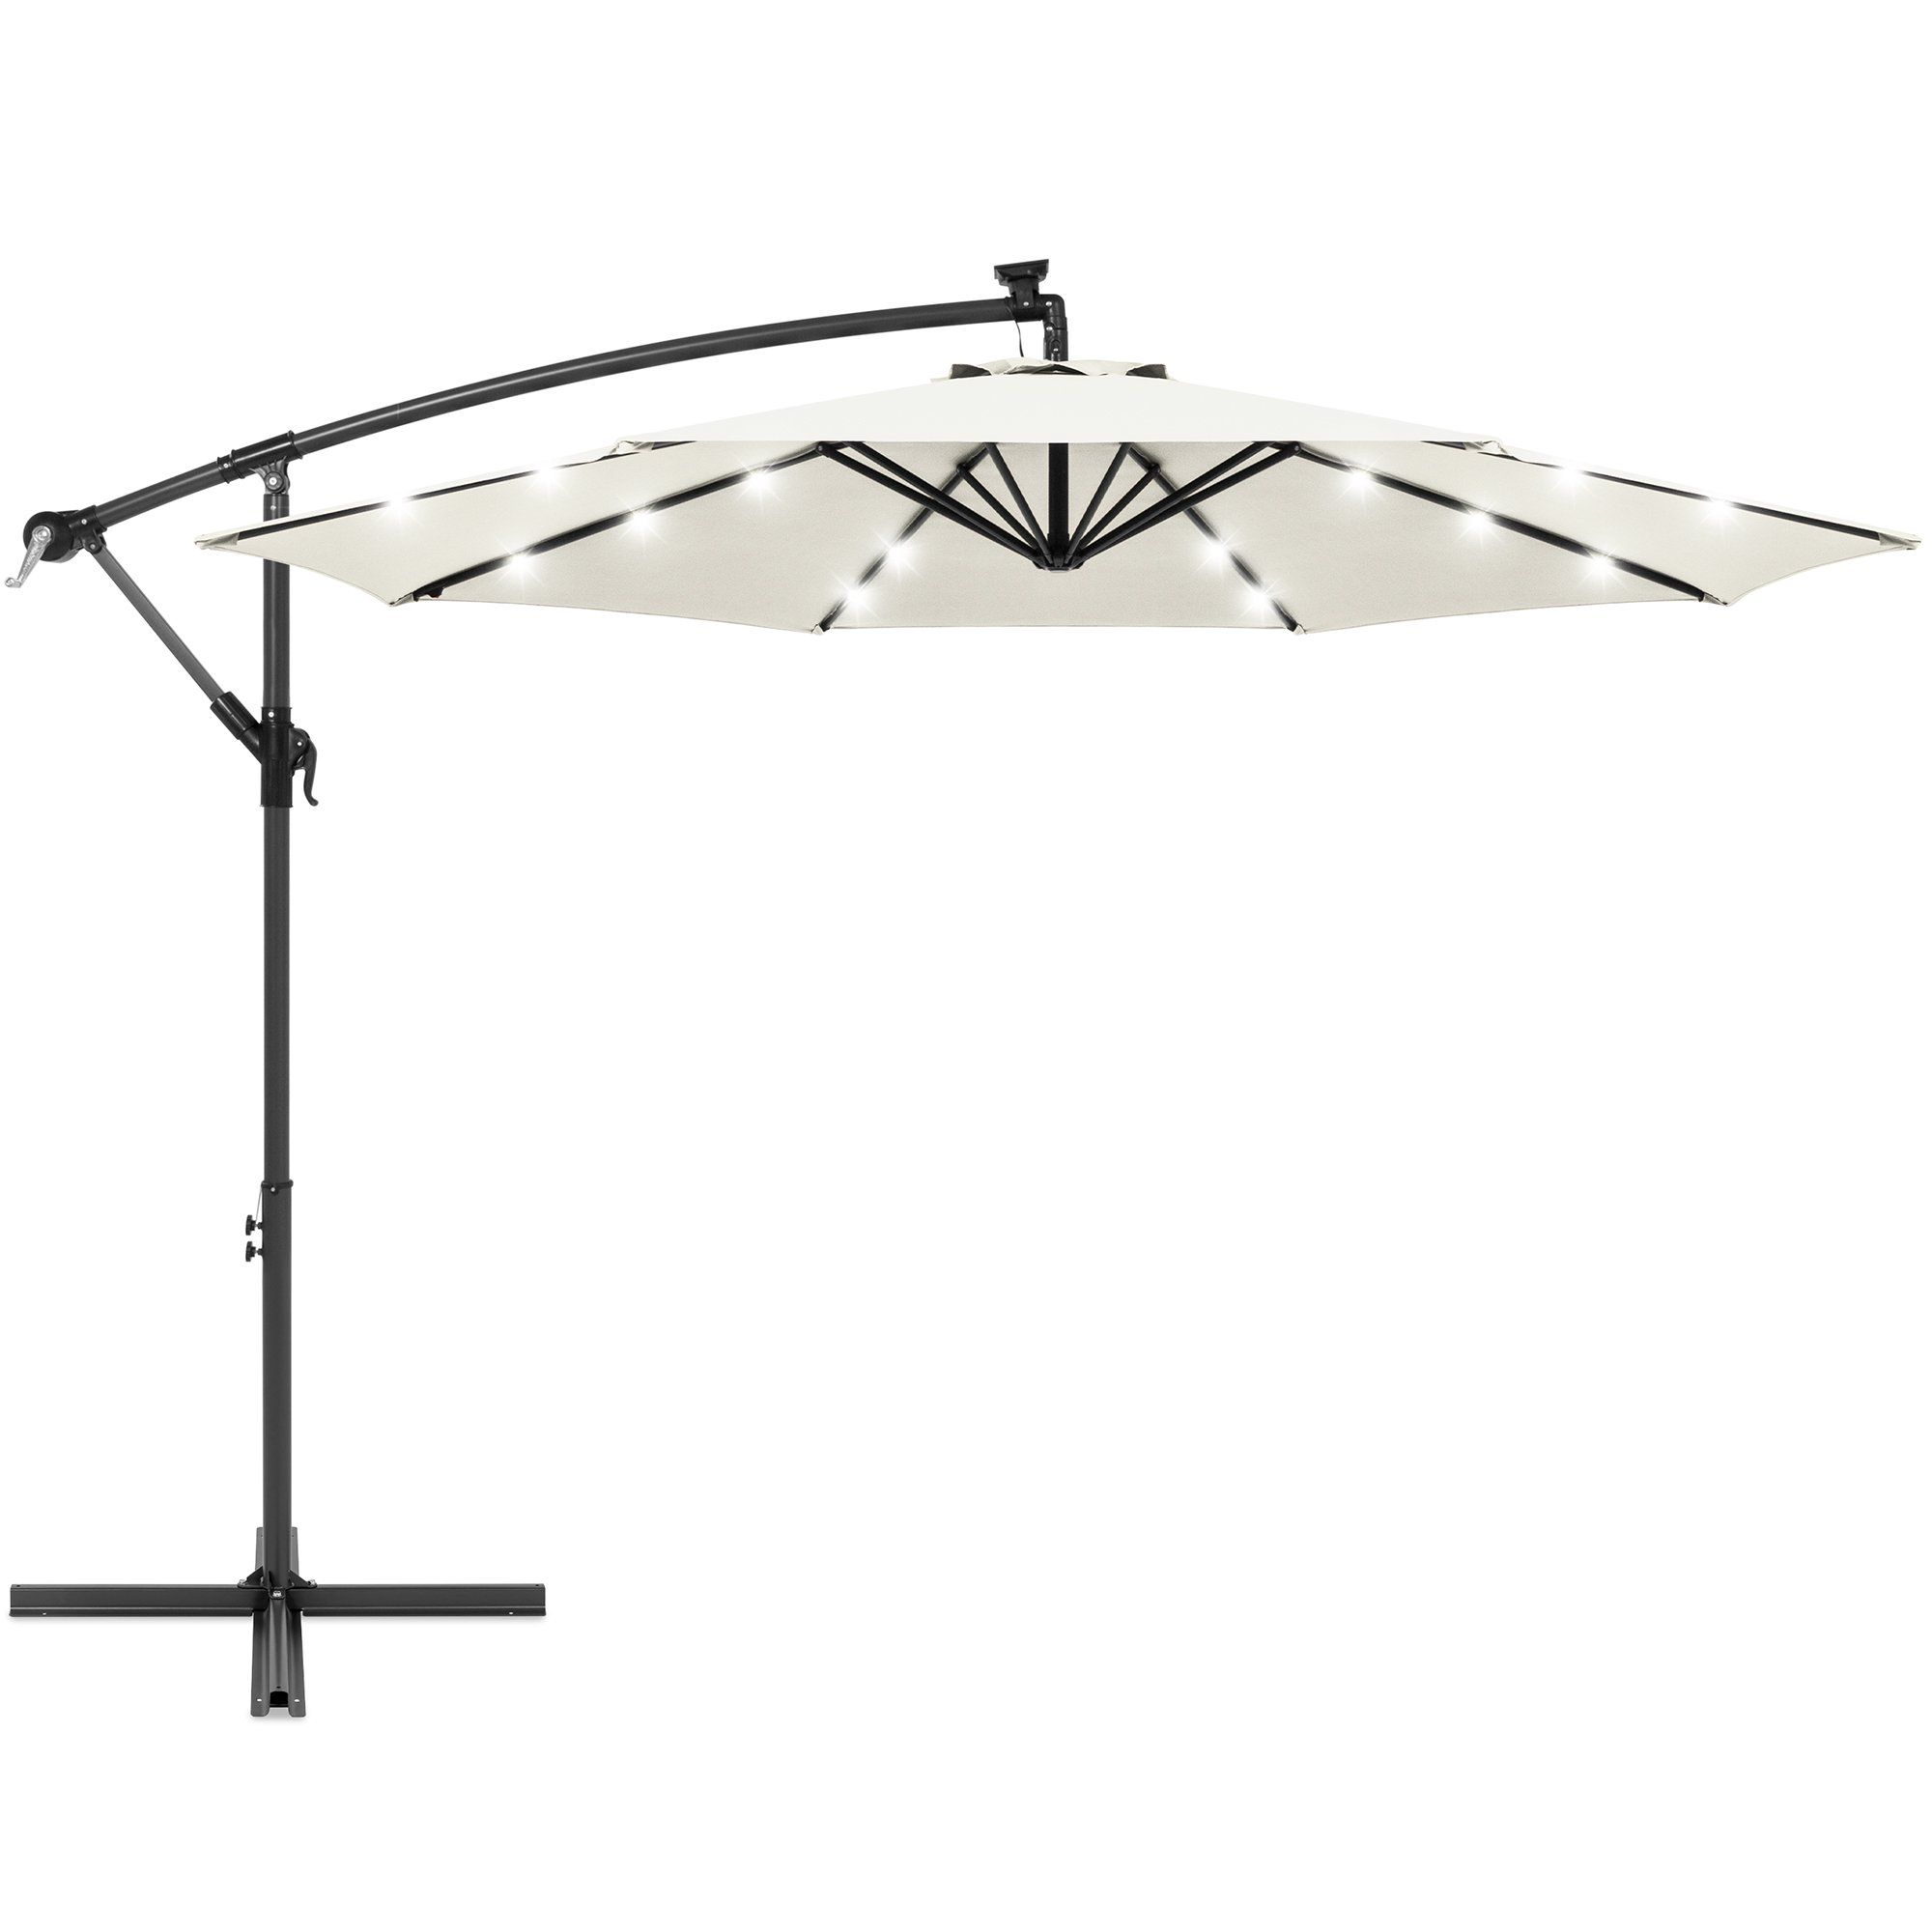 Best Choice Products 10ft Solar Led Offset Hanging Outdoor Market Patio Umbrella W Easy Tilt Adjustment Cream Walmart Com In 2020 Patio Umbrella Offset Umbrella Patio